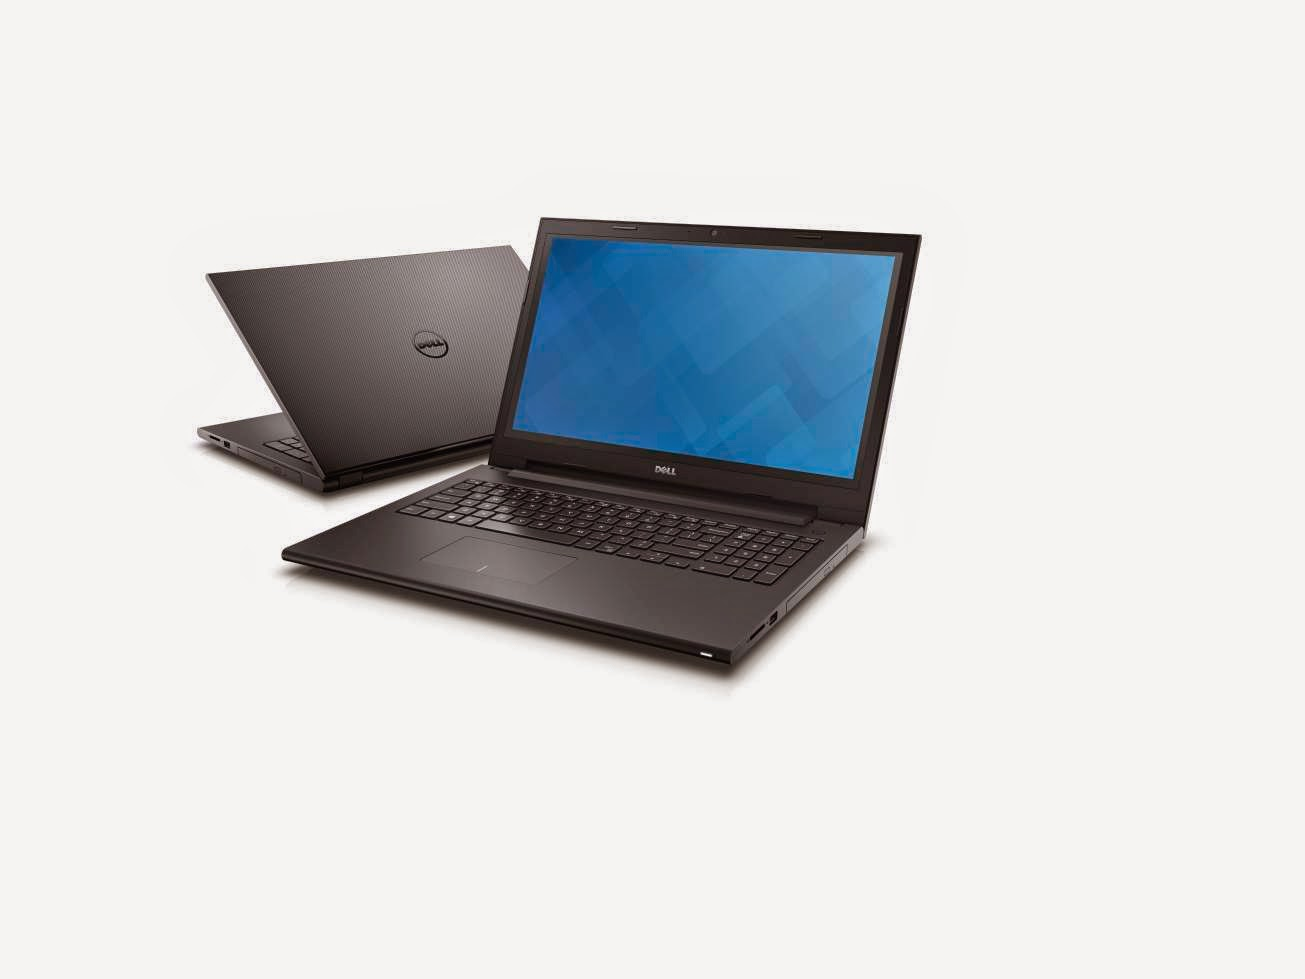 New Dell Inspiron Laptops and All-in-One Desktops Bring Compelling Features, a Variety of Options to Students and Families 17